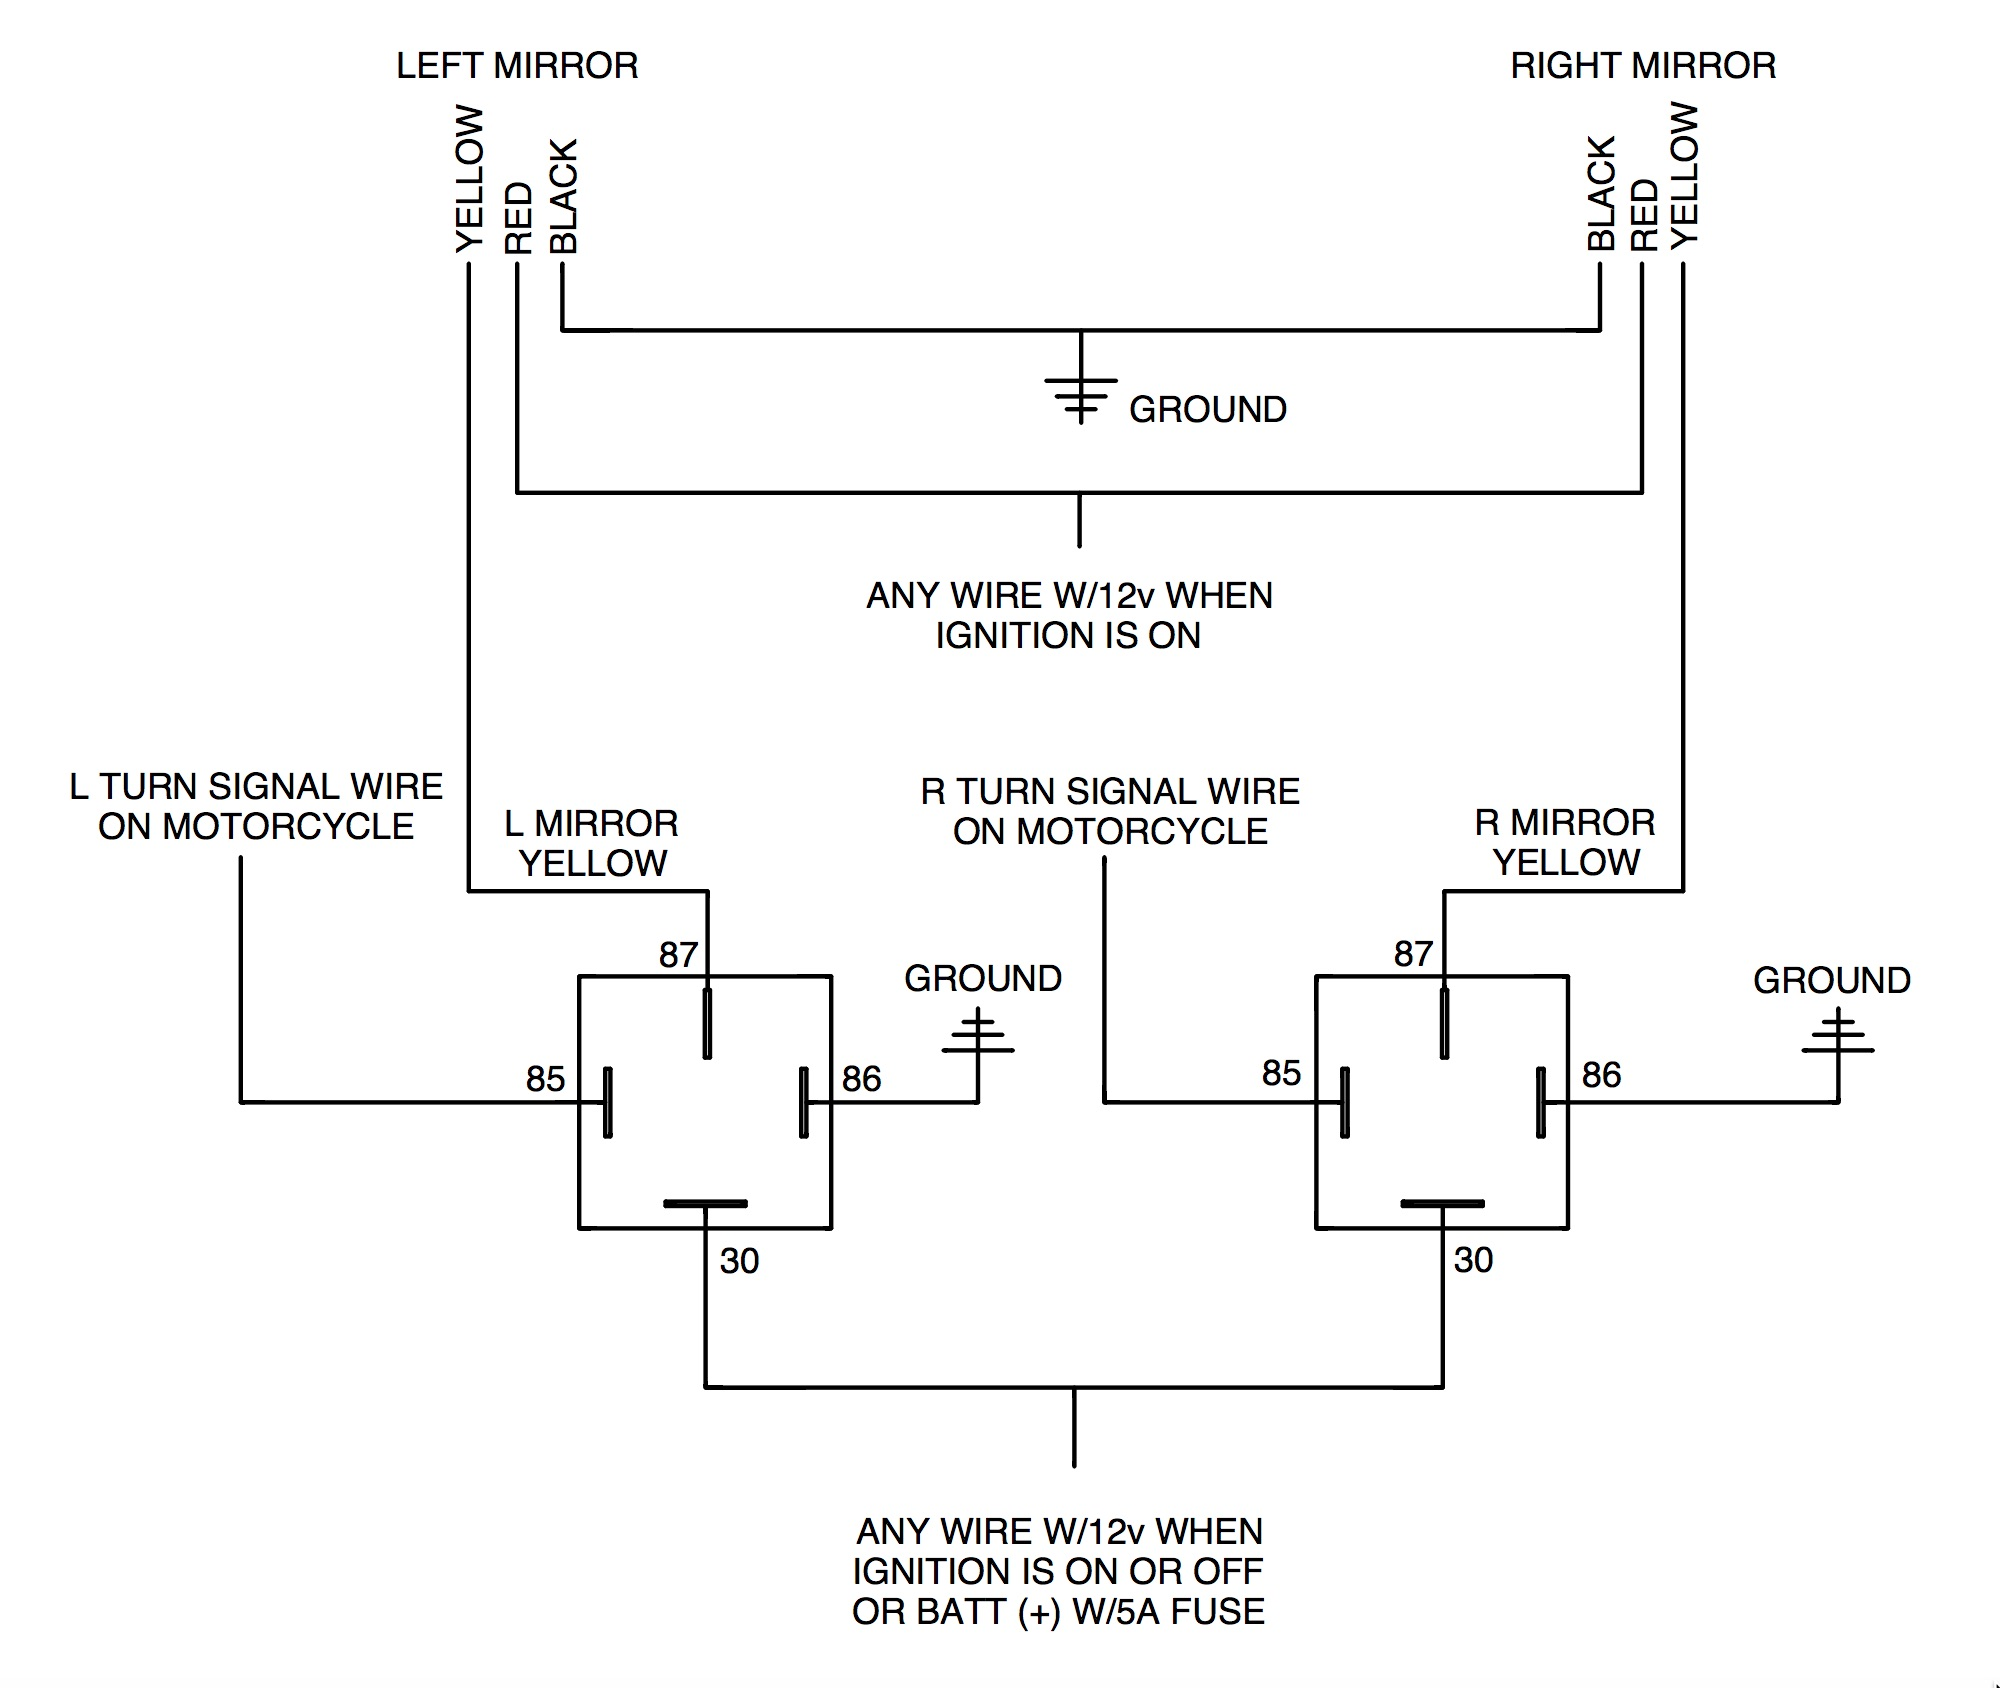 Rivco dual relay diagram adding rivco led mirrors to a victory cross country motorcycle signal dynamics self-canceling turn signal module wiring diagram at panicattacktreatment.co